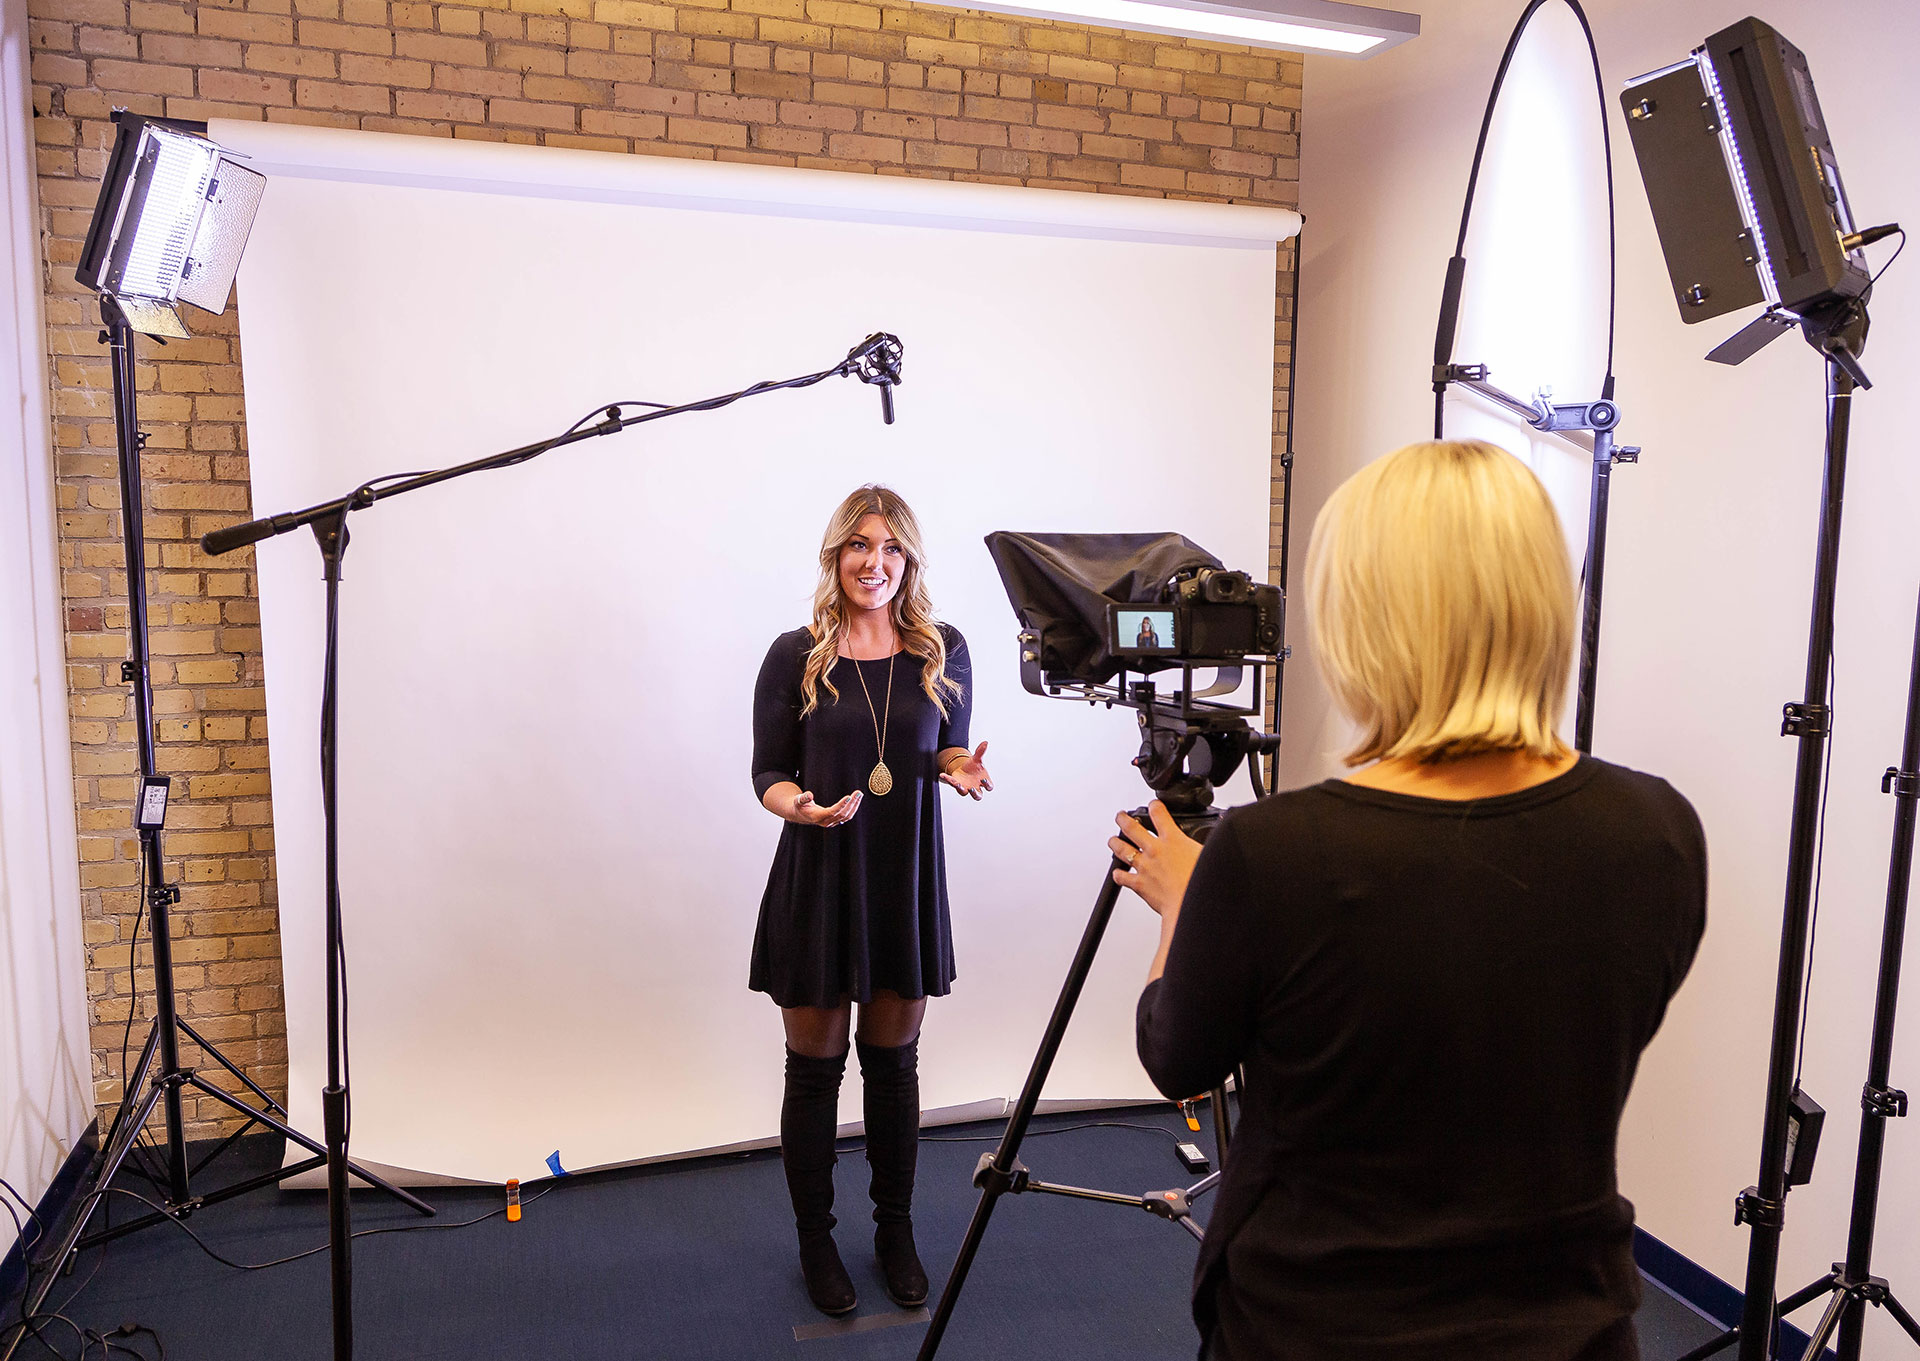 Denamico team member filming in the video studio